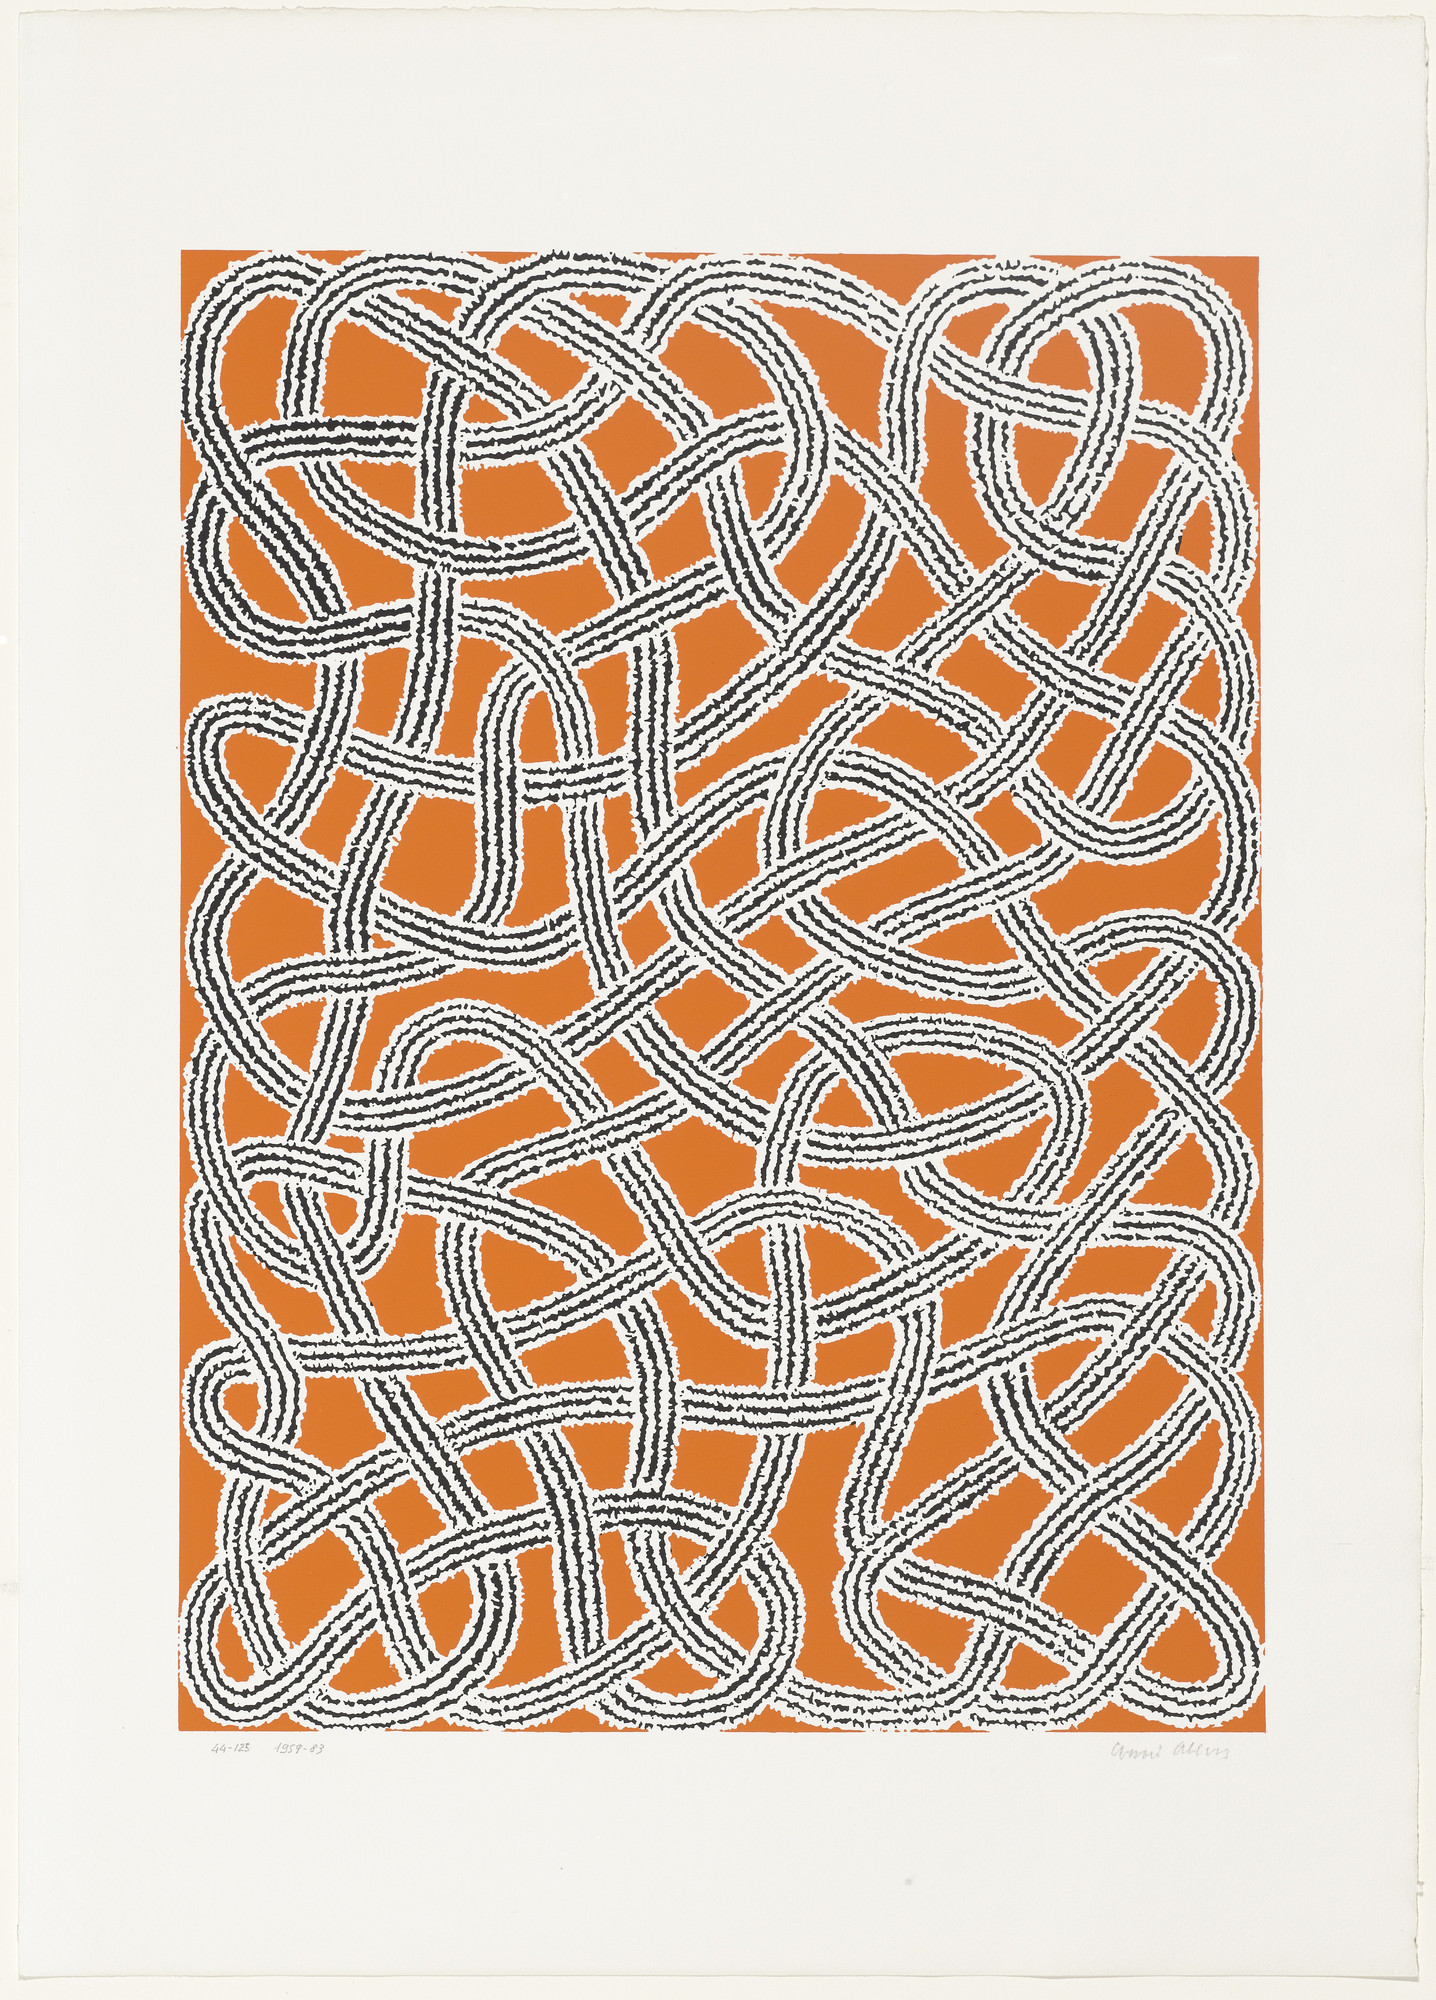 Anni Albers. Study for Nylon Rug from Connections. 1983